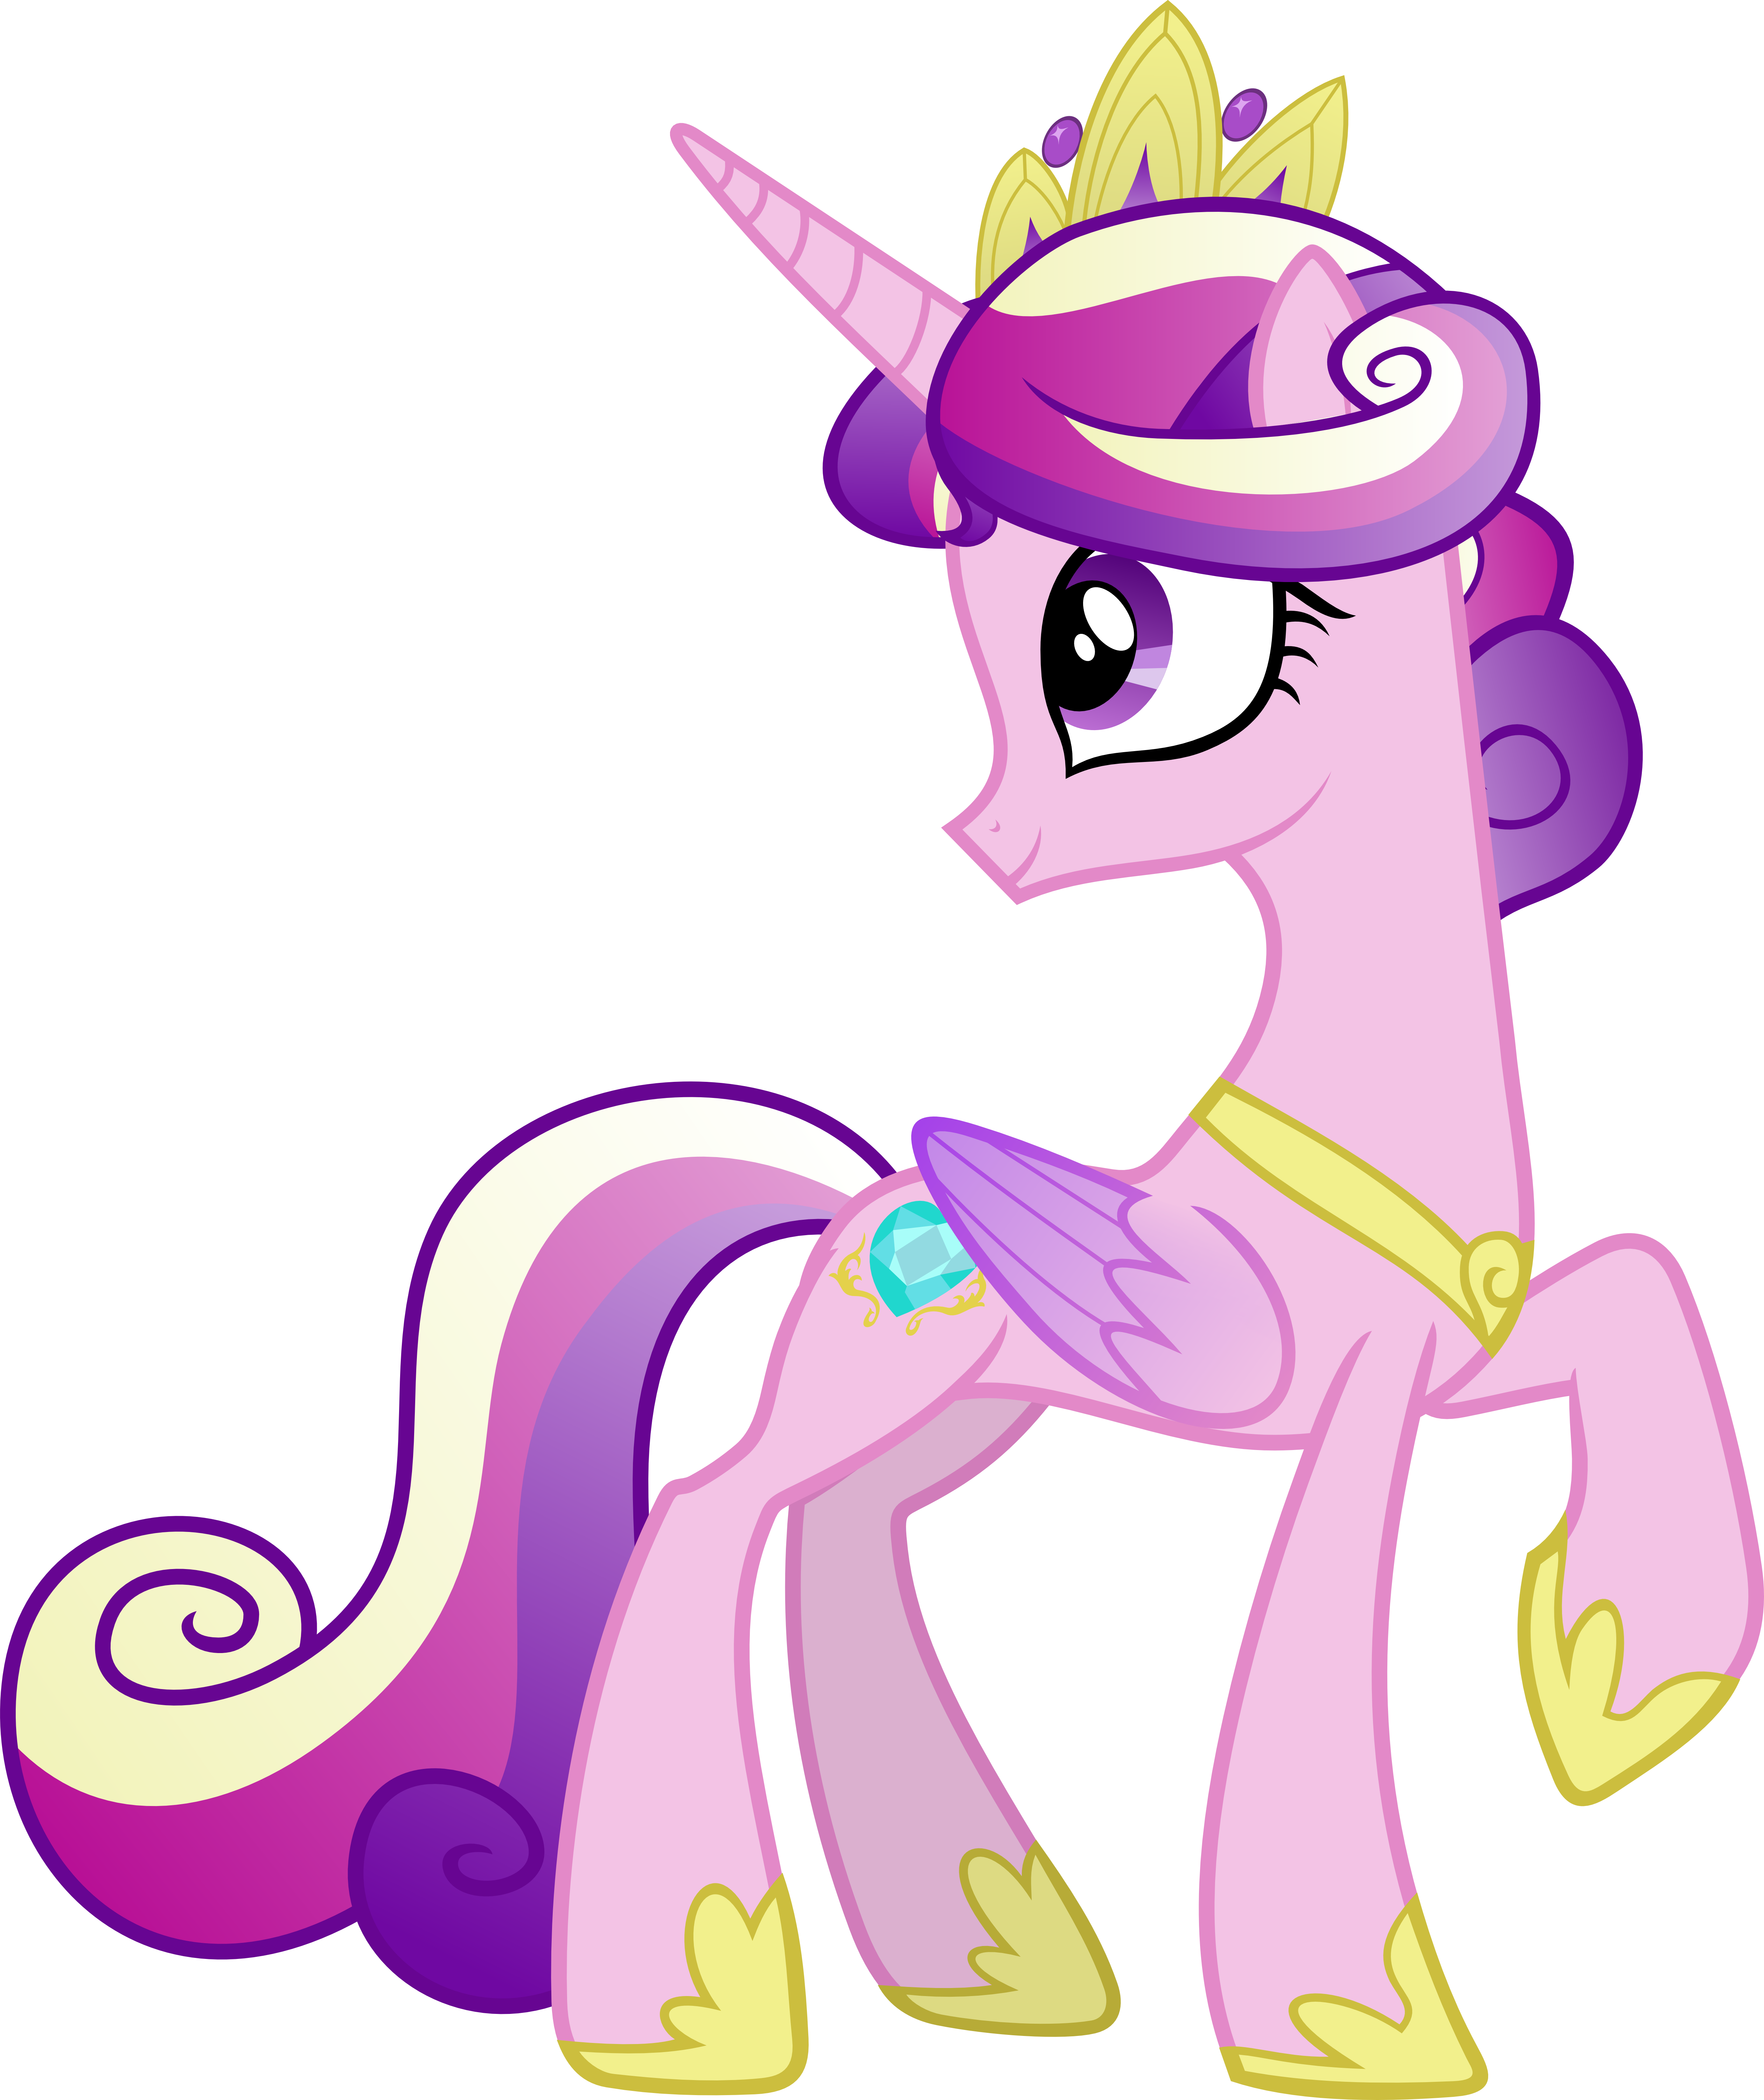 Princess Cadence By Sairoch On Deviantart Images Of Princess Cadence